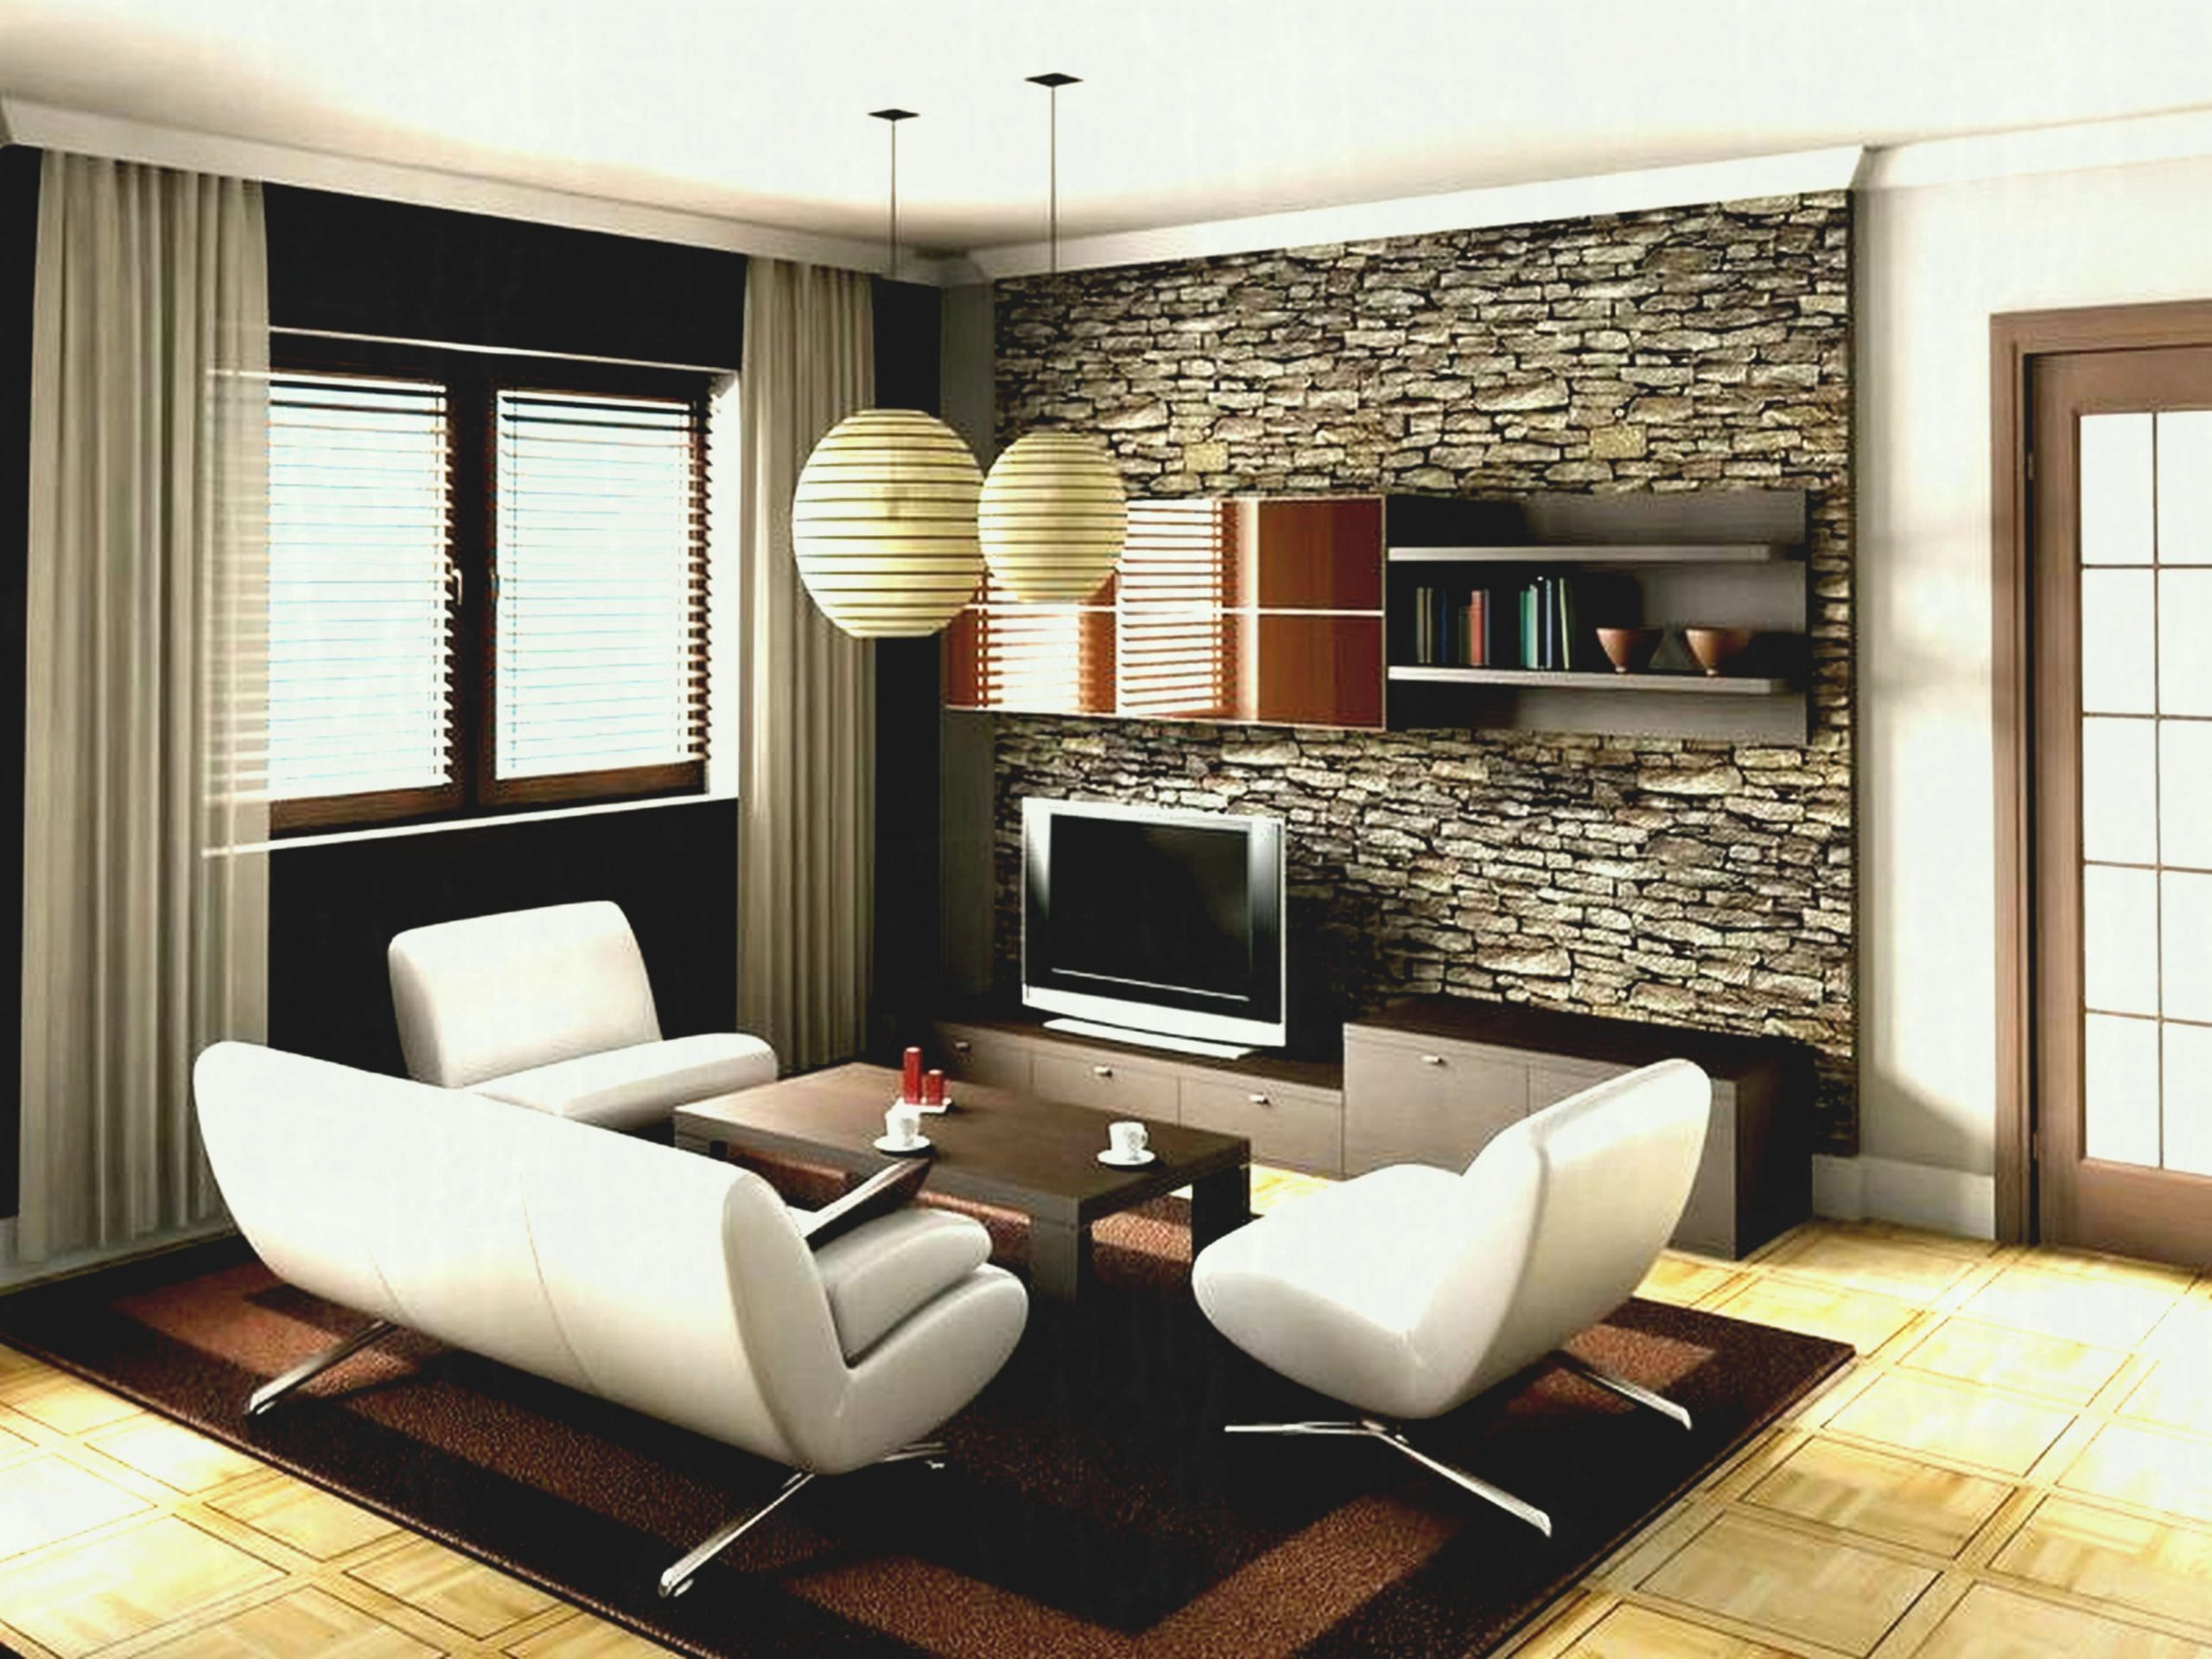 Decorating Ideas Cool Sleek Tv Control Room Layout With Pertaining To Decoration Small Living Room Awesome Decors